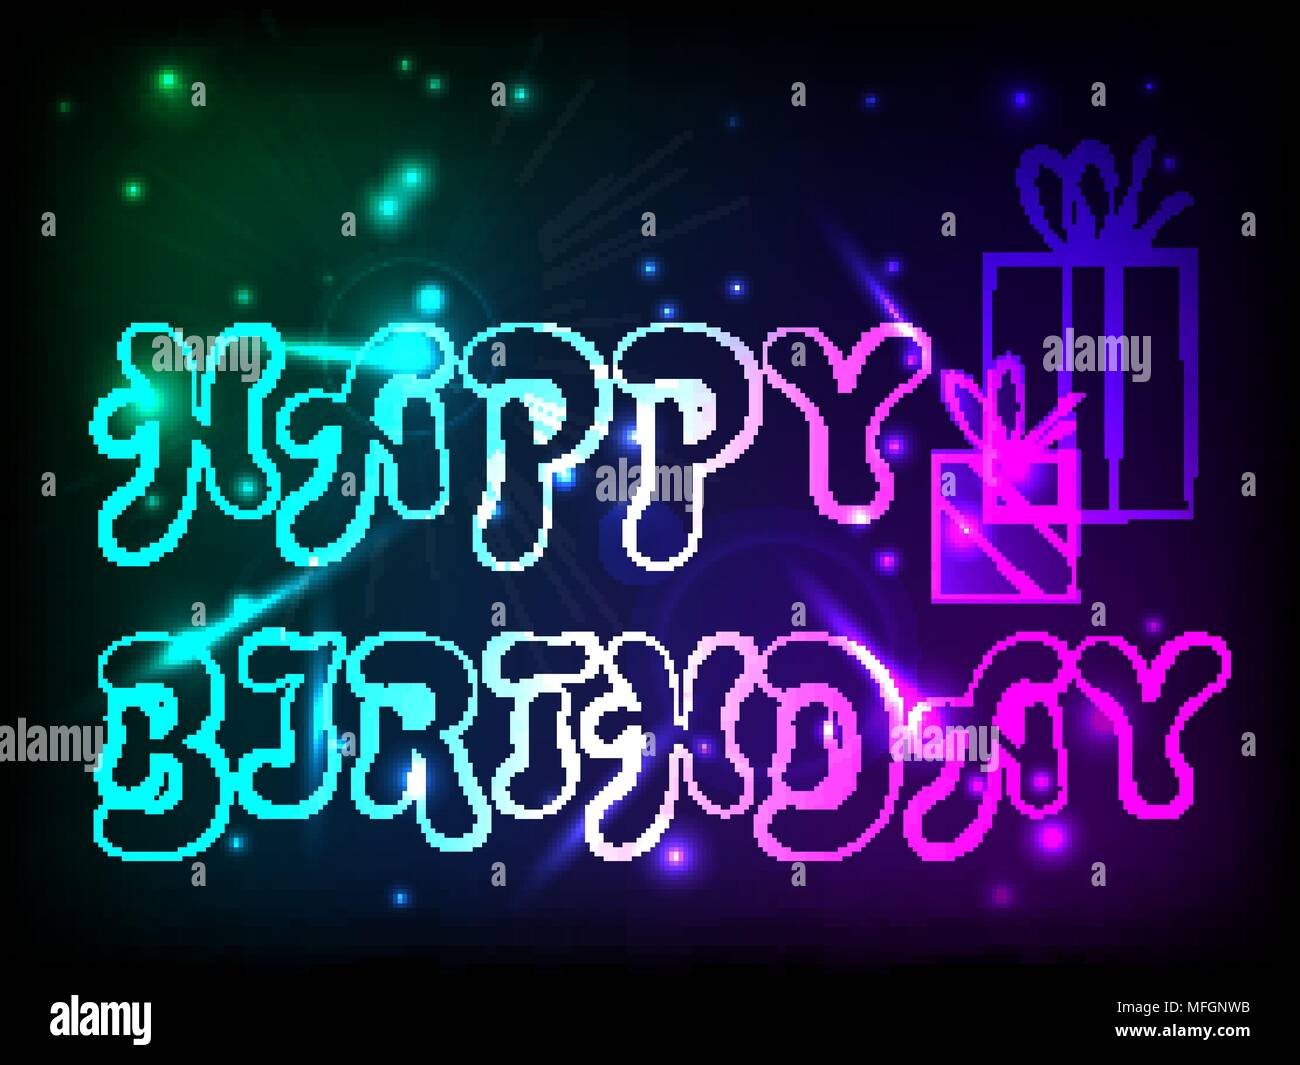 Birthday Postcard With Birthday Greetings With Neon Glow Effect